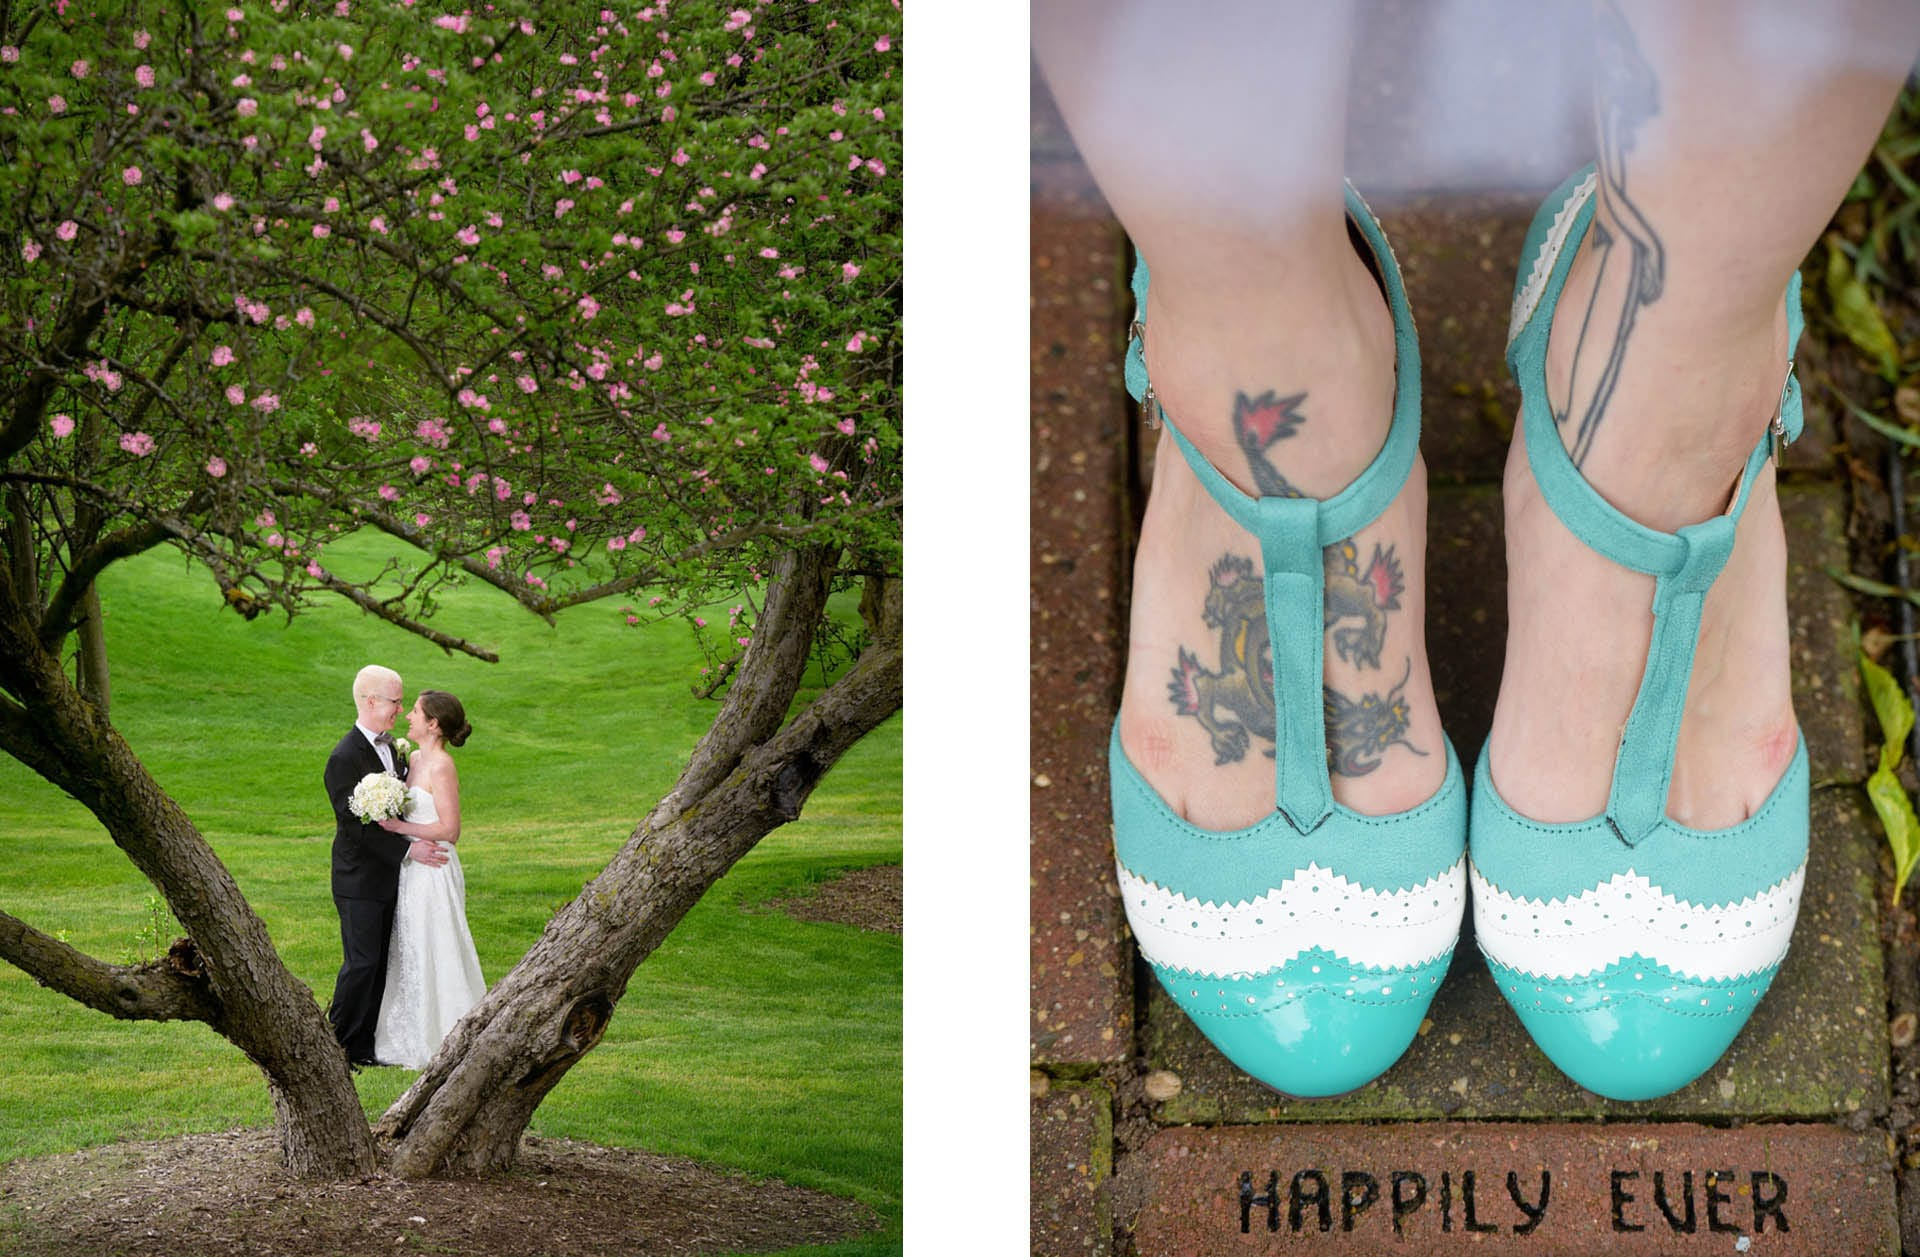 Finding wedding day art is part of my job like this couple and a heart shaped tree at the Stonebridge Golf Club in Ann Arbor and a bride with her vintage wedding day shoes.